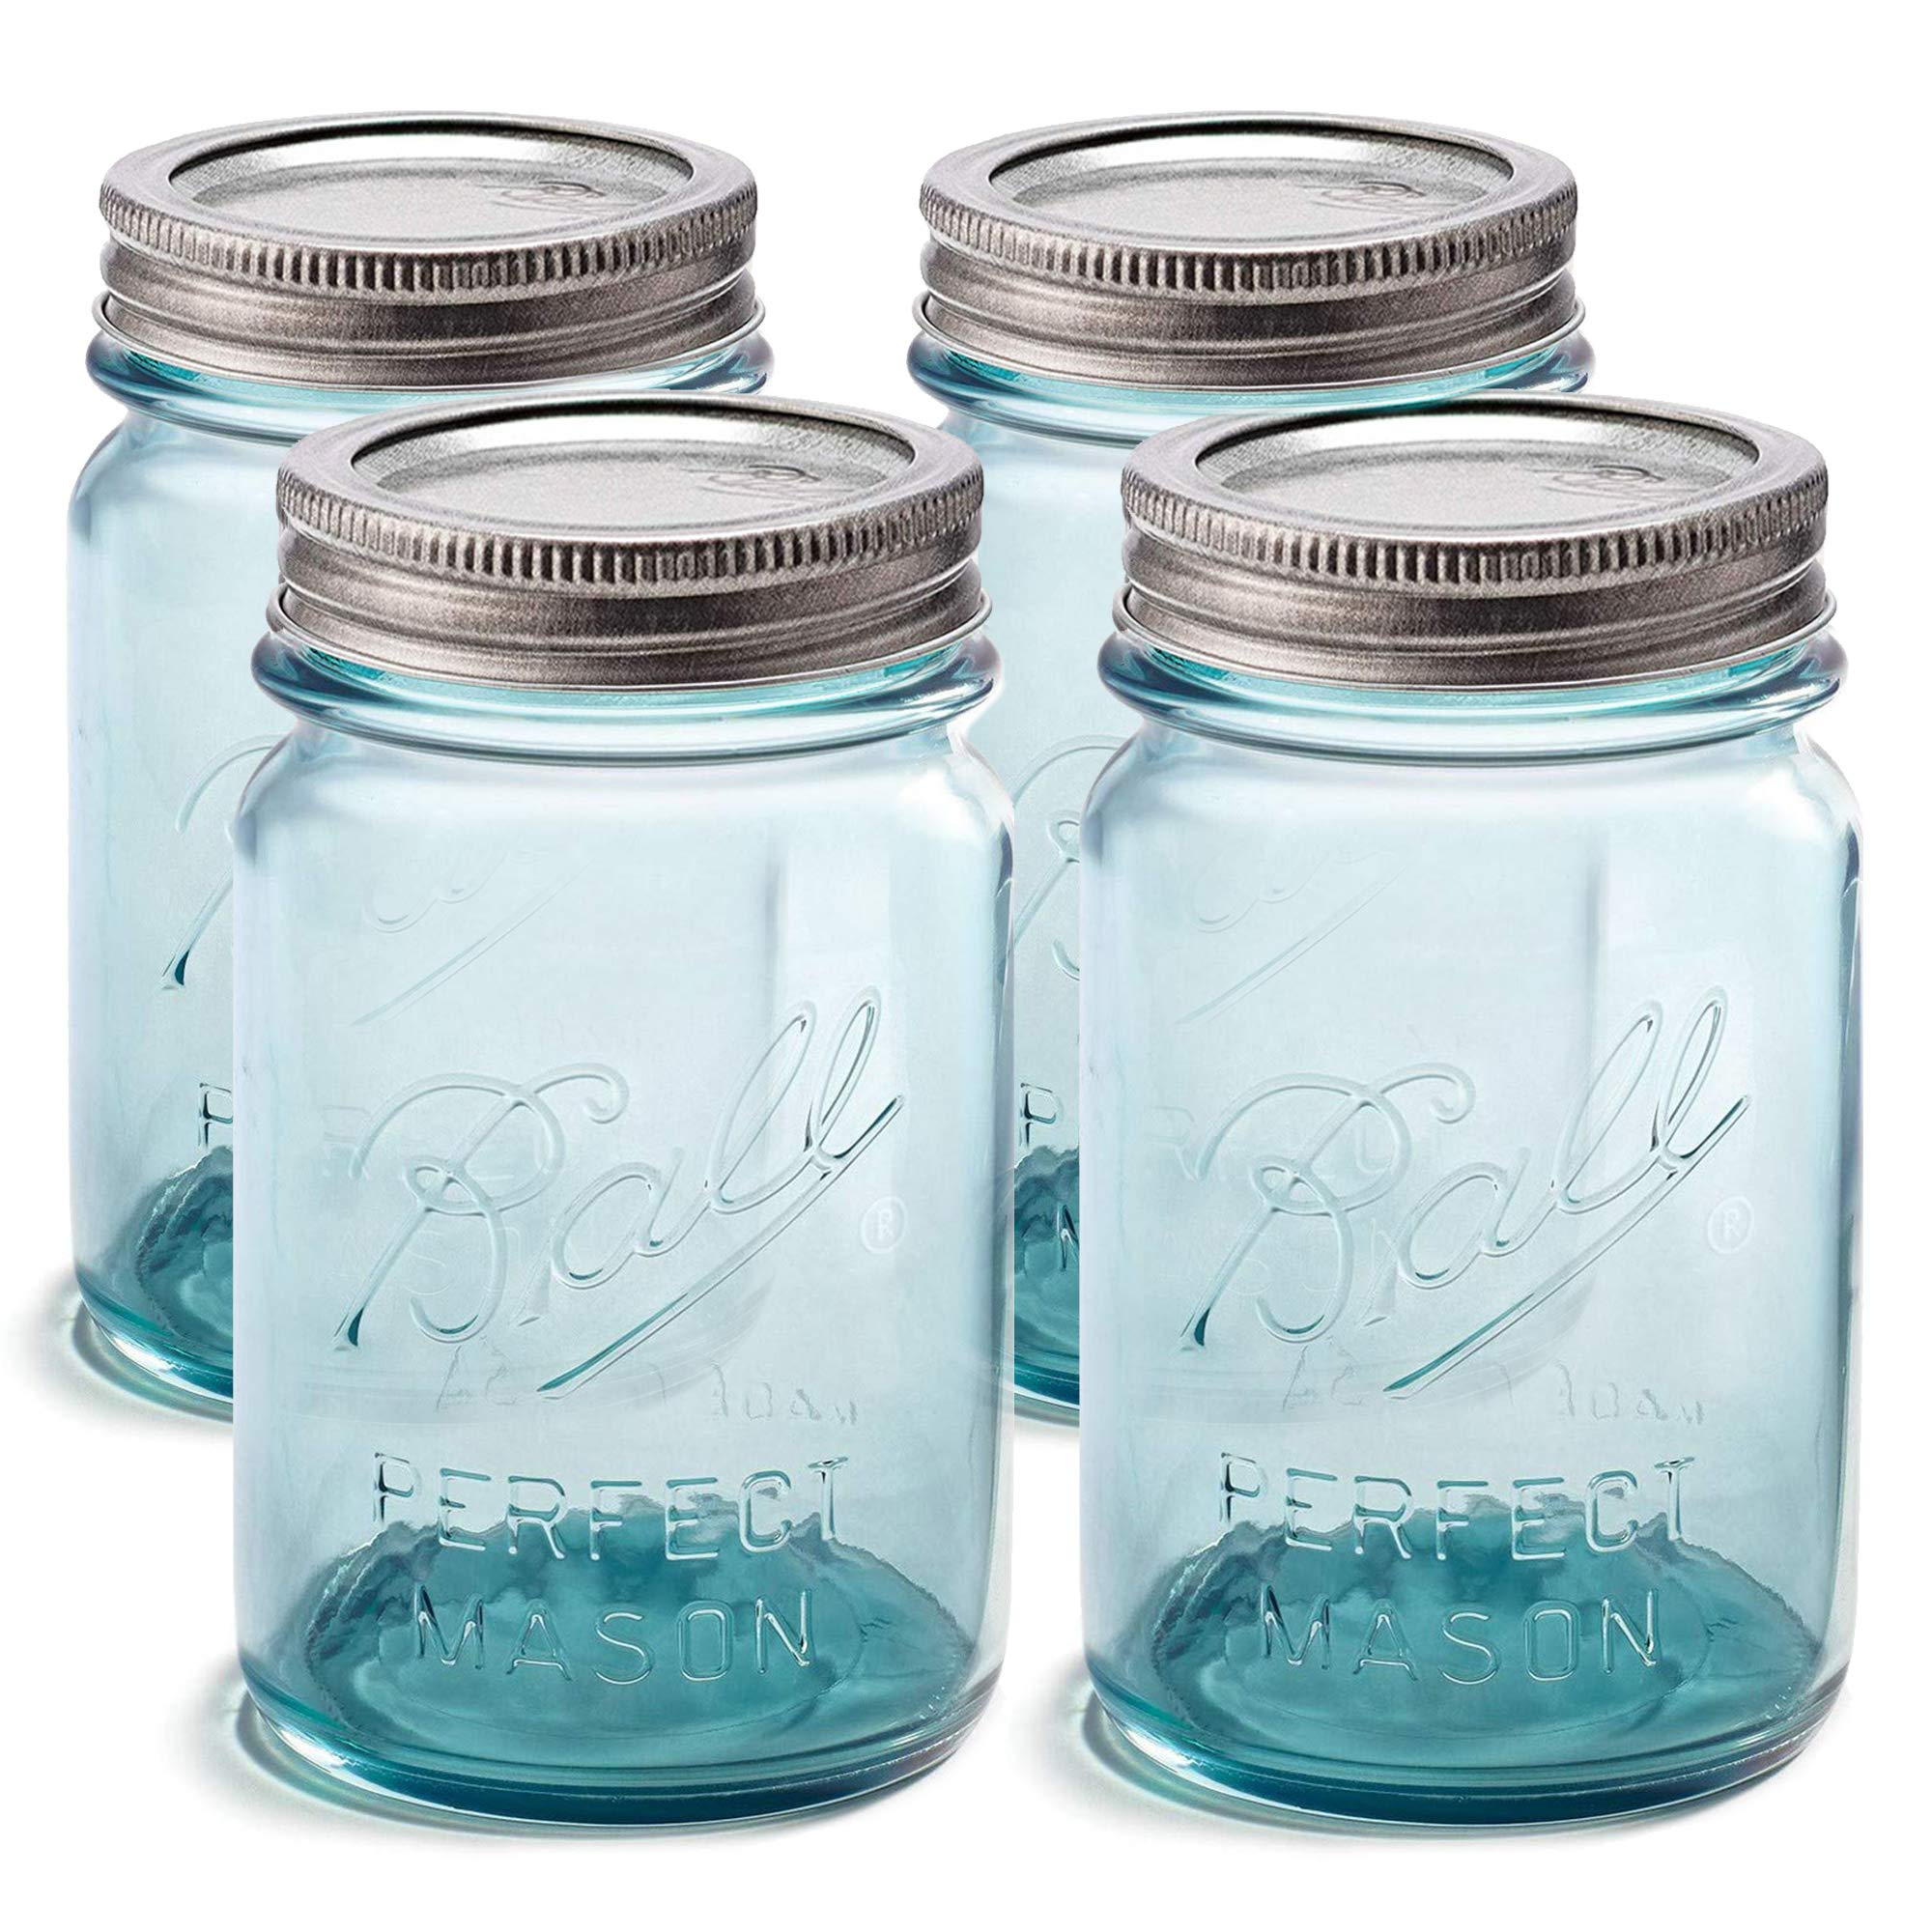 For canning Ball Wide Mouth Mason Jars 8 oz Microwave /& Dishwasher Safe Freezing Preserving SEWANTA Jar Opener With Wide Mouth Lids and Bands Pickling Set of 6 Canning Jelly Jars Fermenting